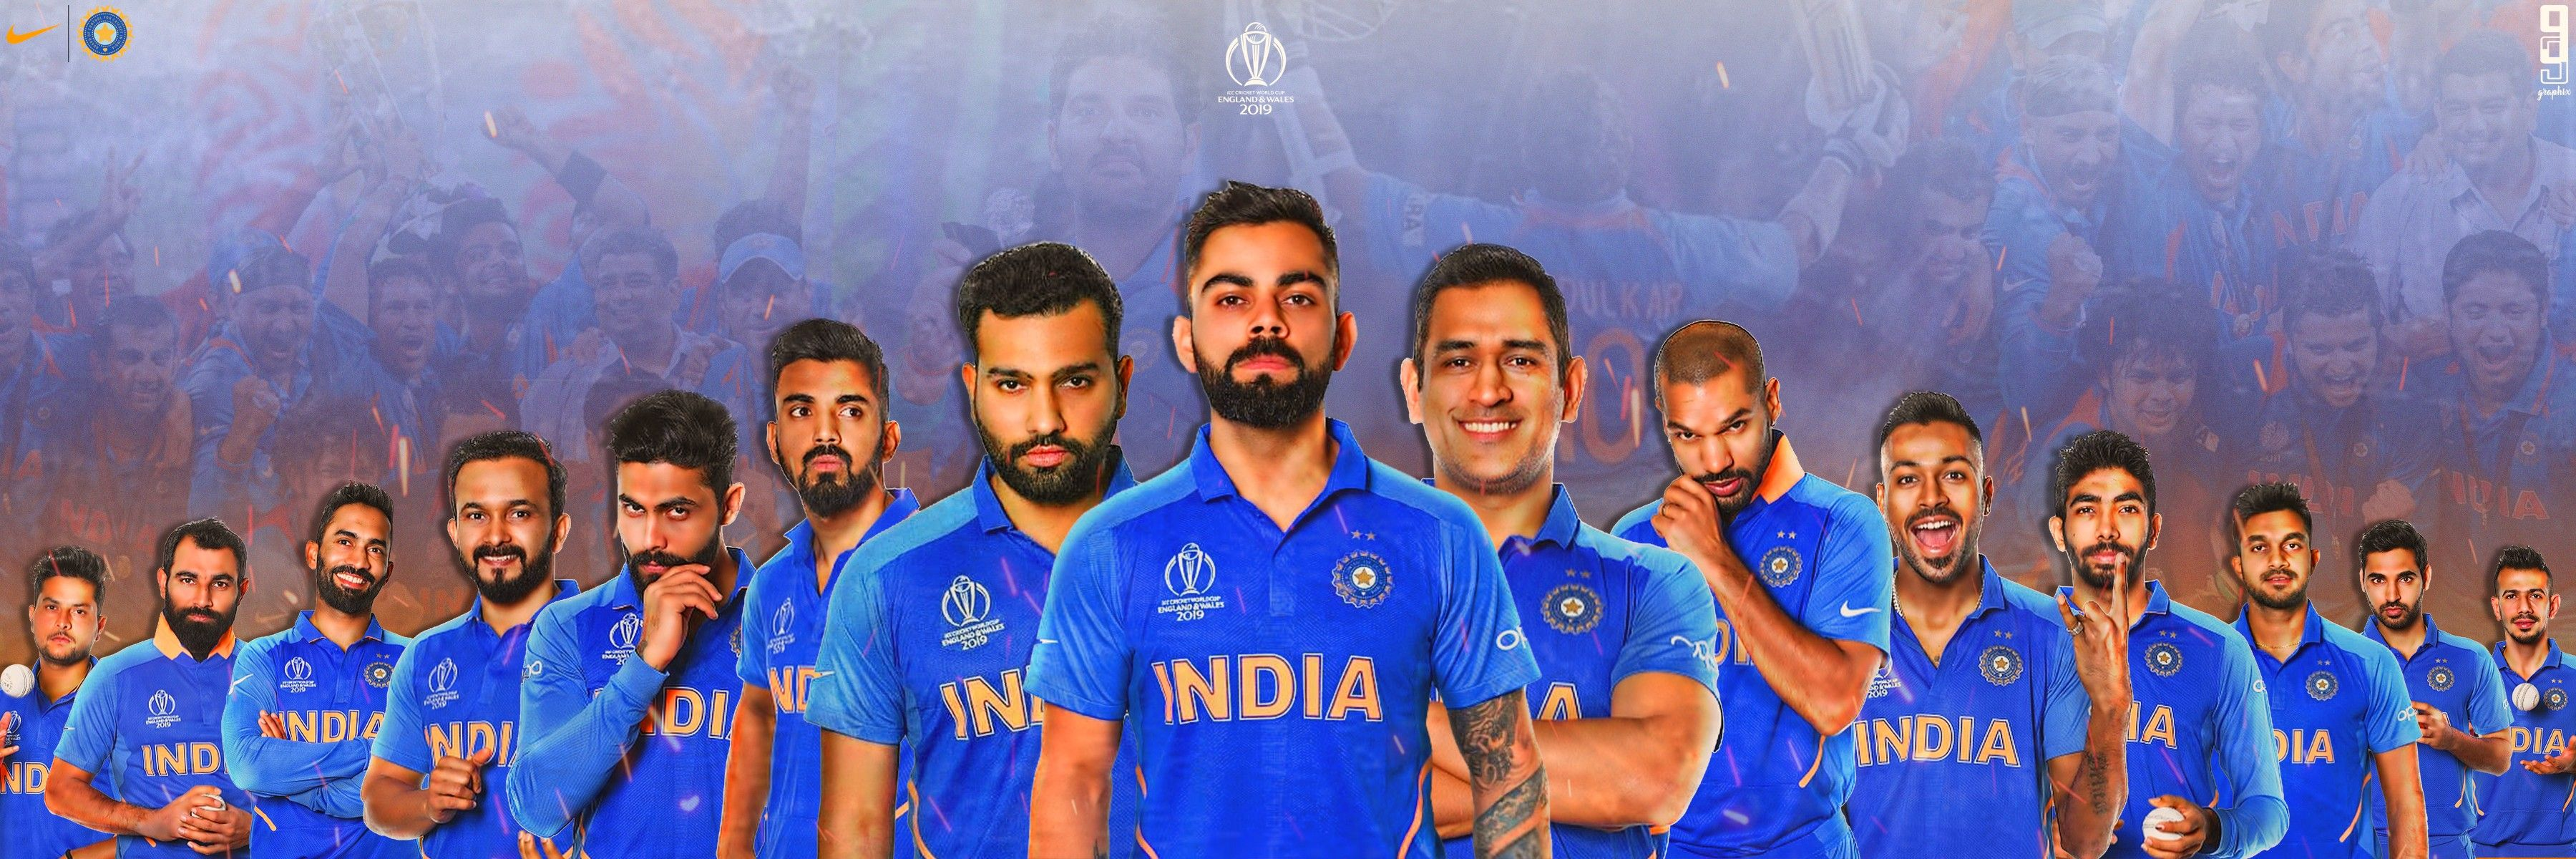 Indian Cricket Team Cricket World Cup 2019 India Cricket Team Cricket Teams World Cricket